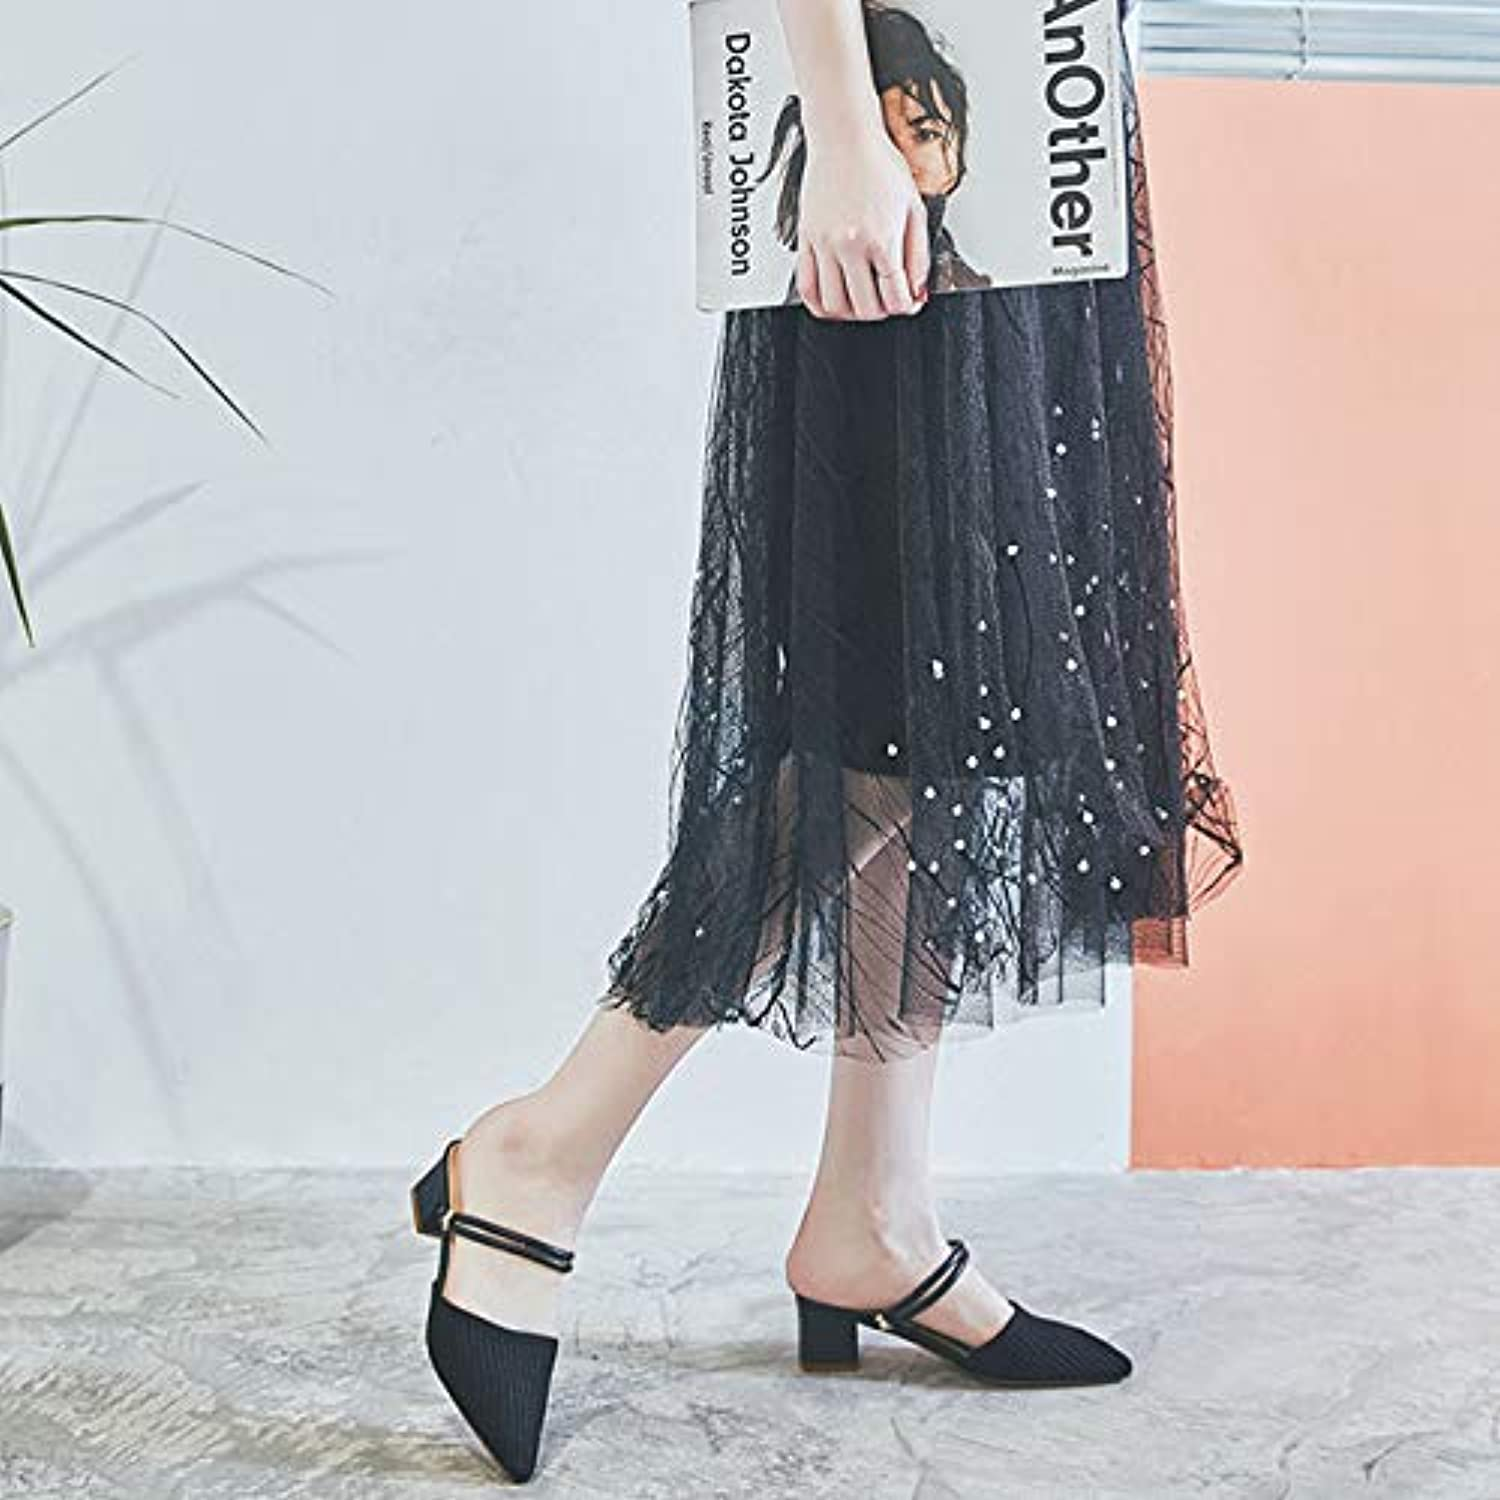 Pointed Slippers Women 2019 Summer New Thick with Lazy Half Slippers Female Fairy Wind Sandals Women One shoes Two Wear,B,US6.57 EU37 UK4.55 CN37